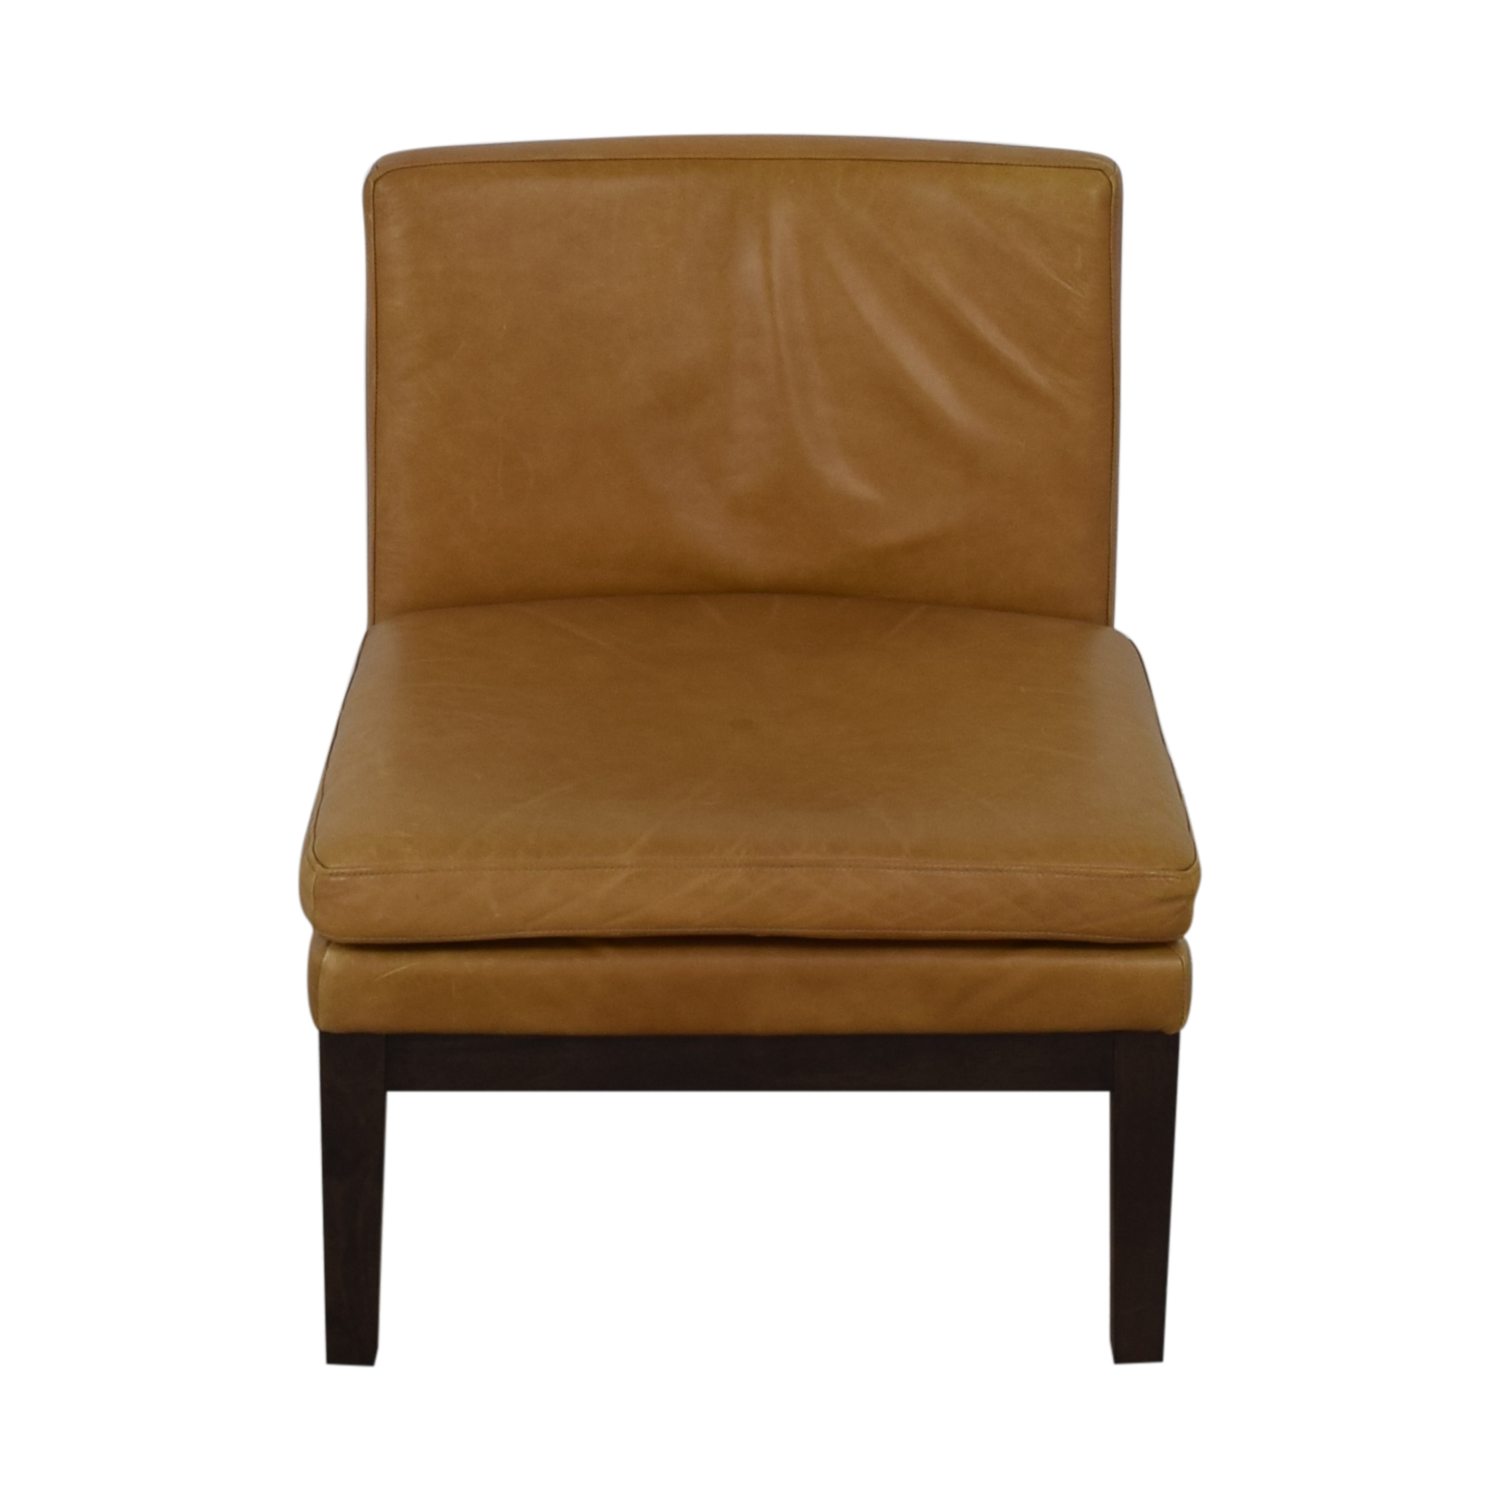 Miraculous 72 Off West Elm West Elm Orange Tan Leather Chair Chairs Pdpeps Interior Chair Design Pdpepsorg